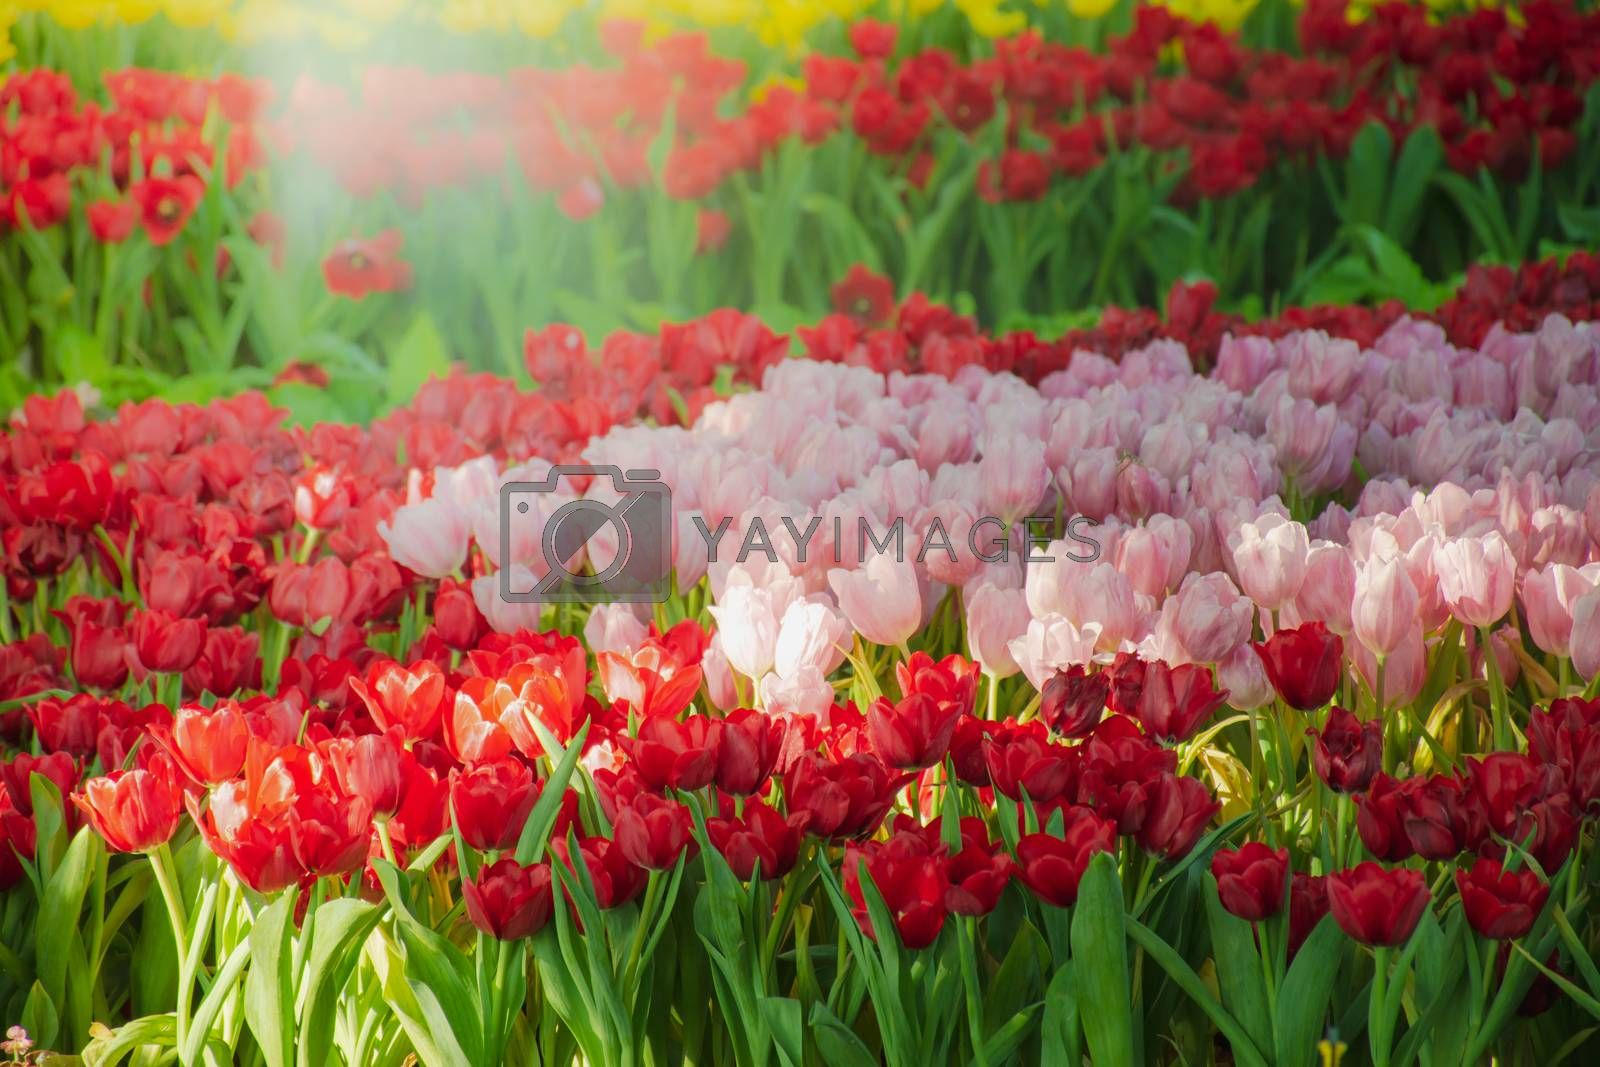 Royalty free image of Beautiful tulips in the blooming scene by anuraksir